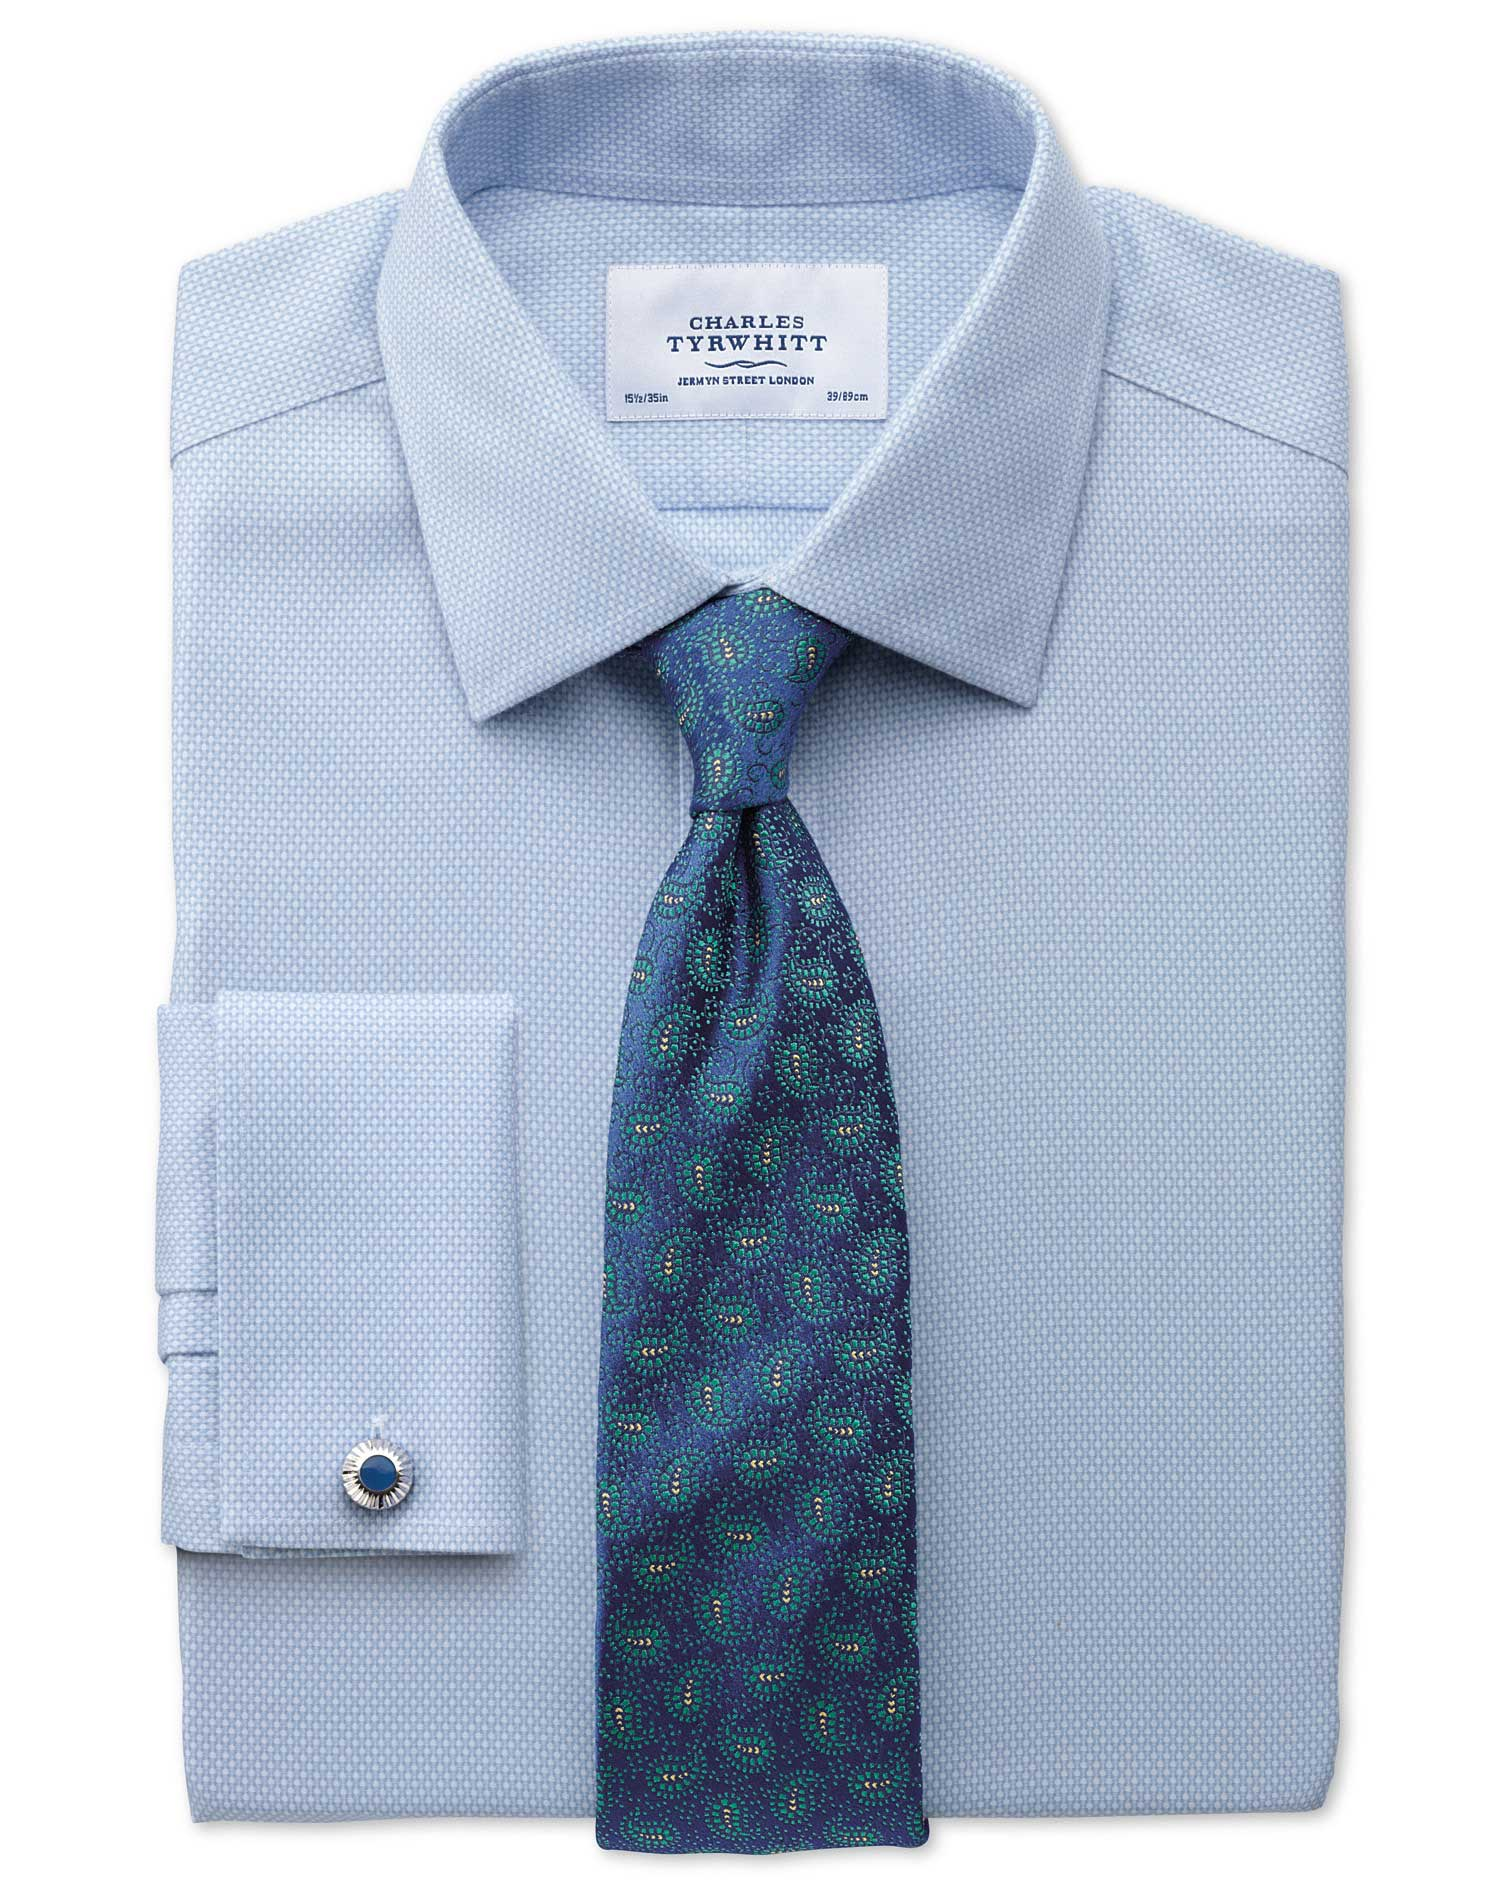 Classic Fit Non Iron Honeycomb Sky Blue Shirt Charles